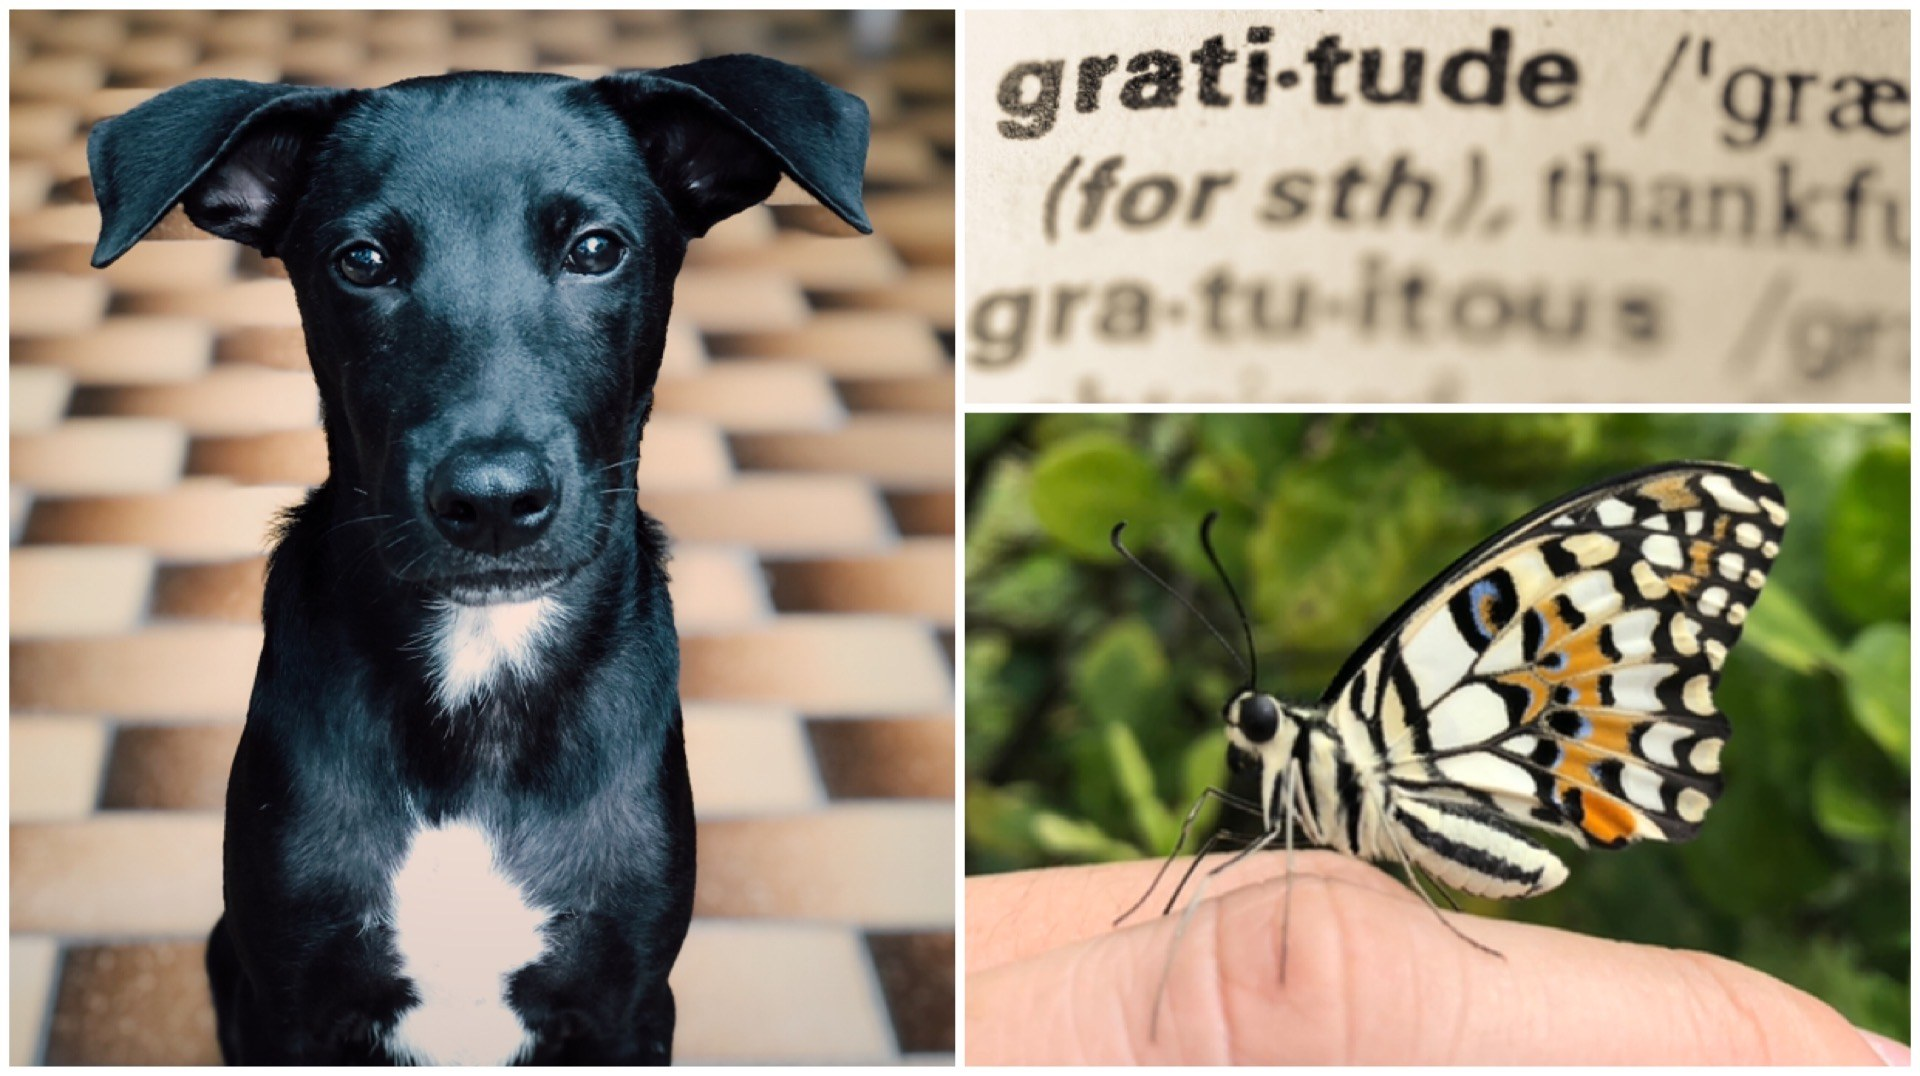 How An Attitude Of Gratitude, A Dog And A Butterfly Saw Me Through 2020